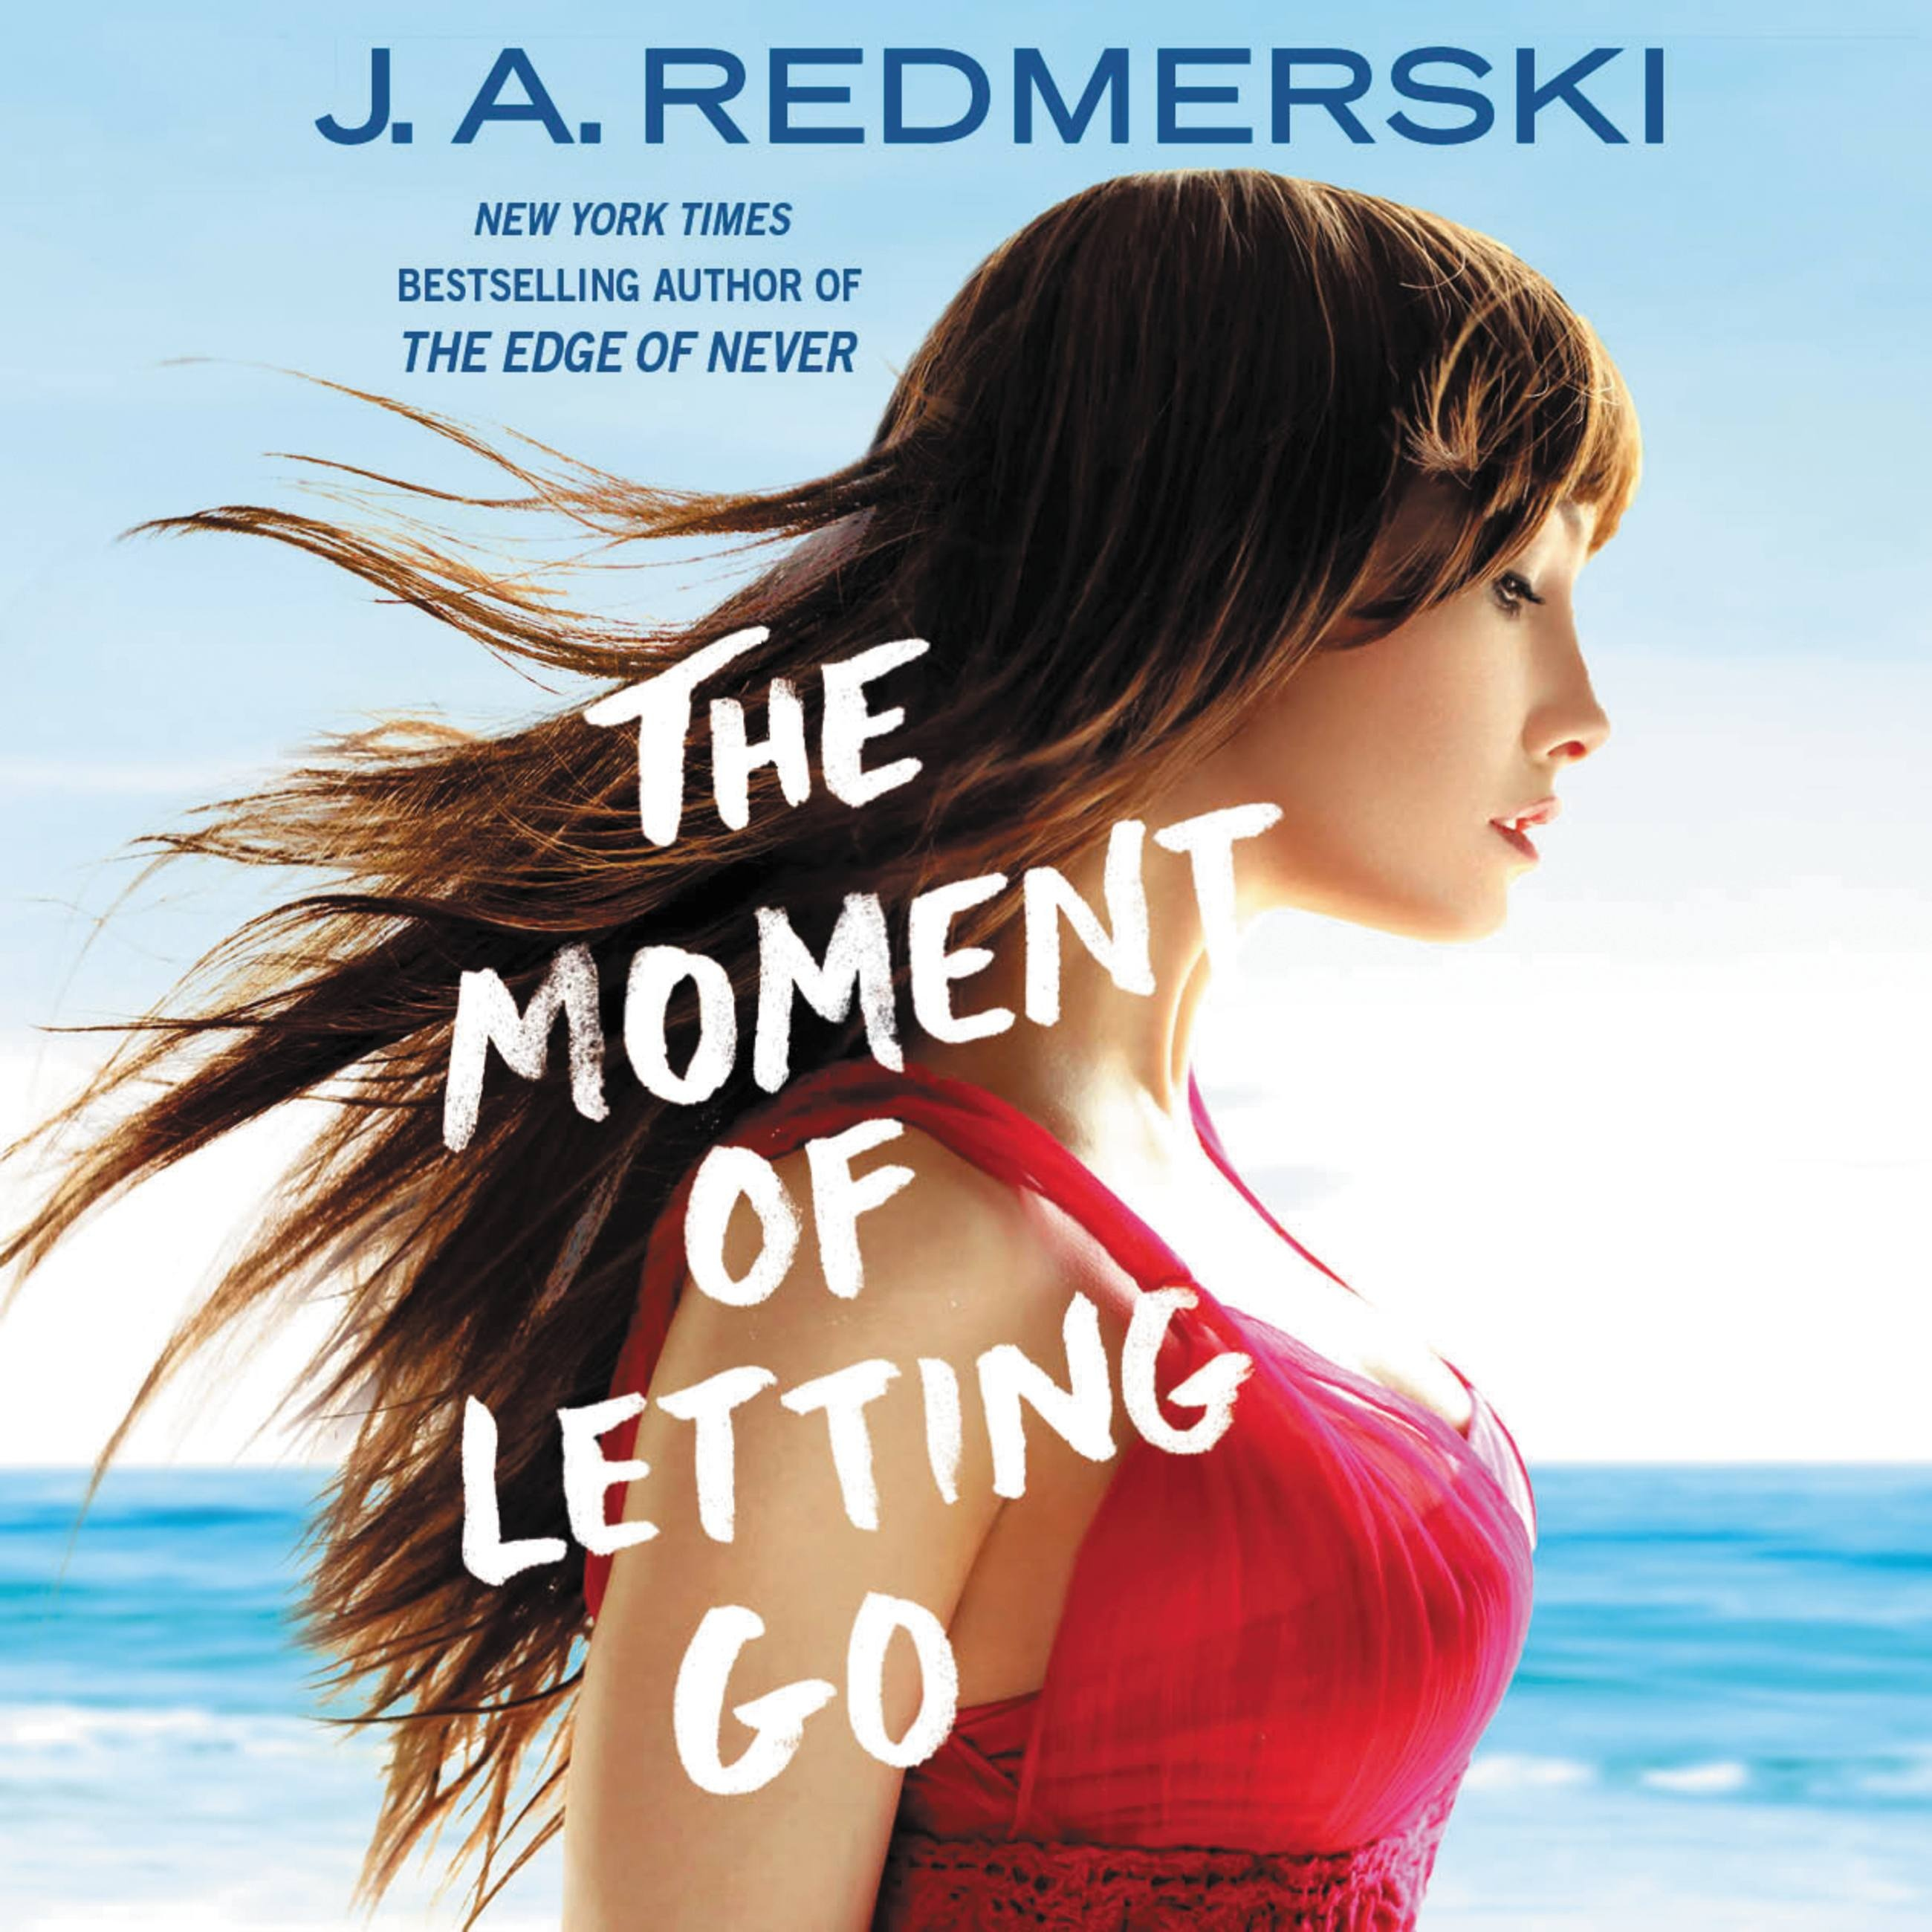 narratives about letting go Letting go and moving forward by karim hajee see all articles by get updates on law of attraction get updates on average: 388889 your rating: none average: 39.